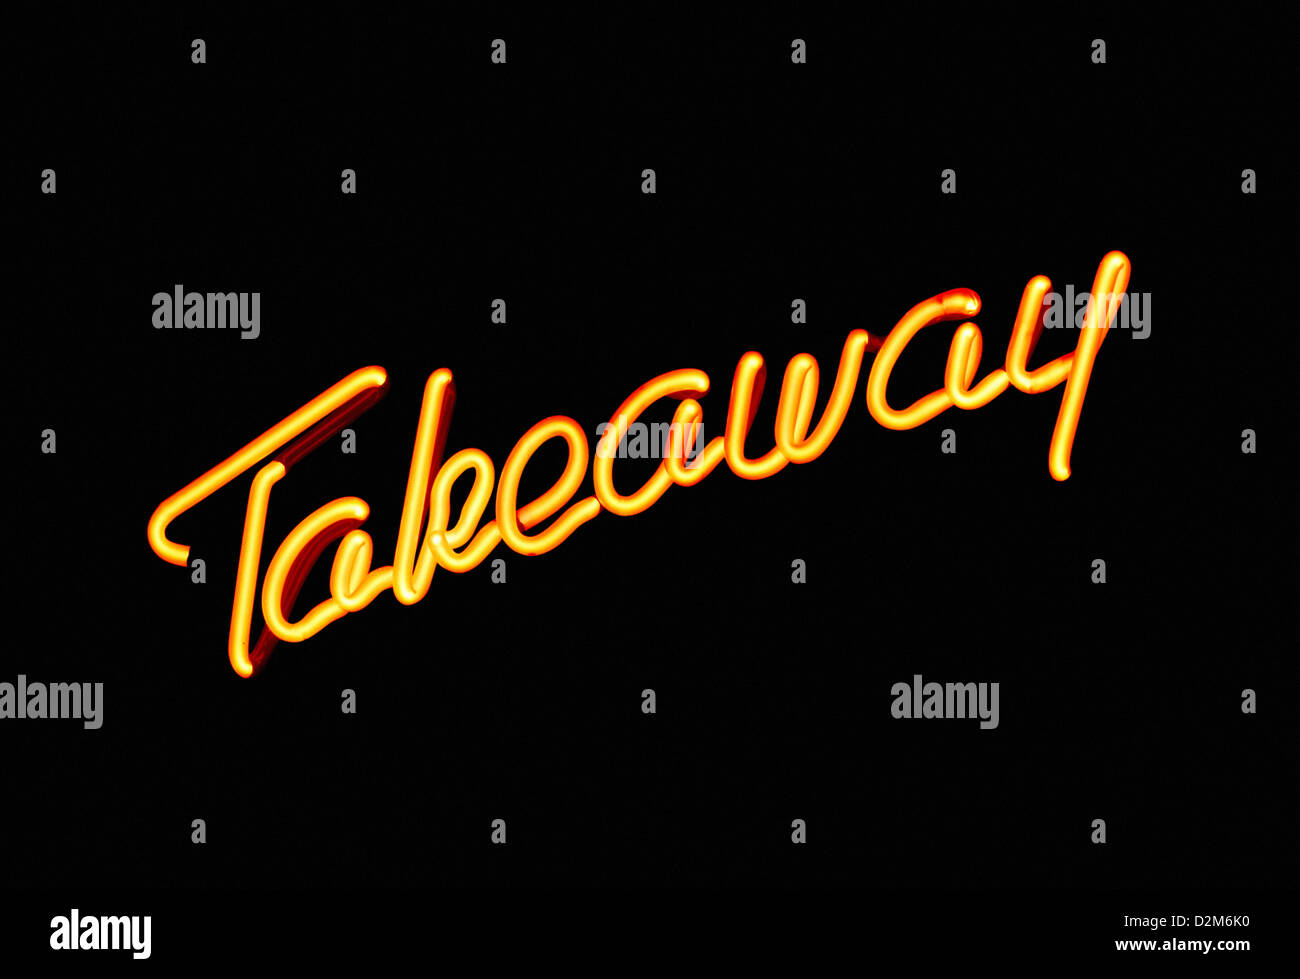 illuminated neon sign advertising take away or carry out - Stock Image